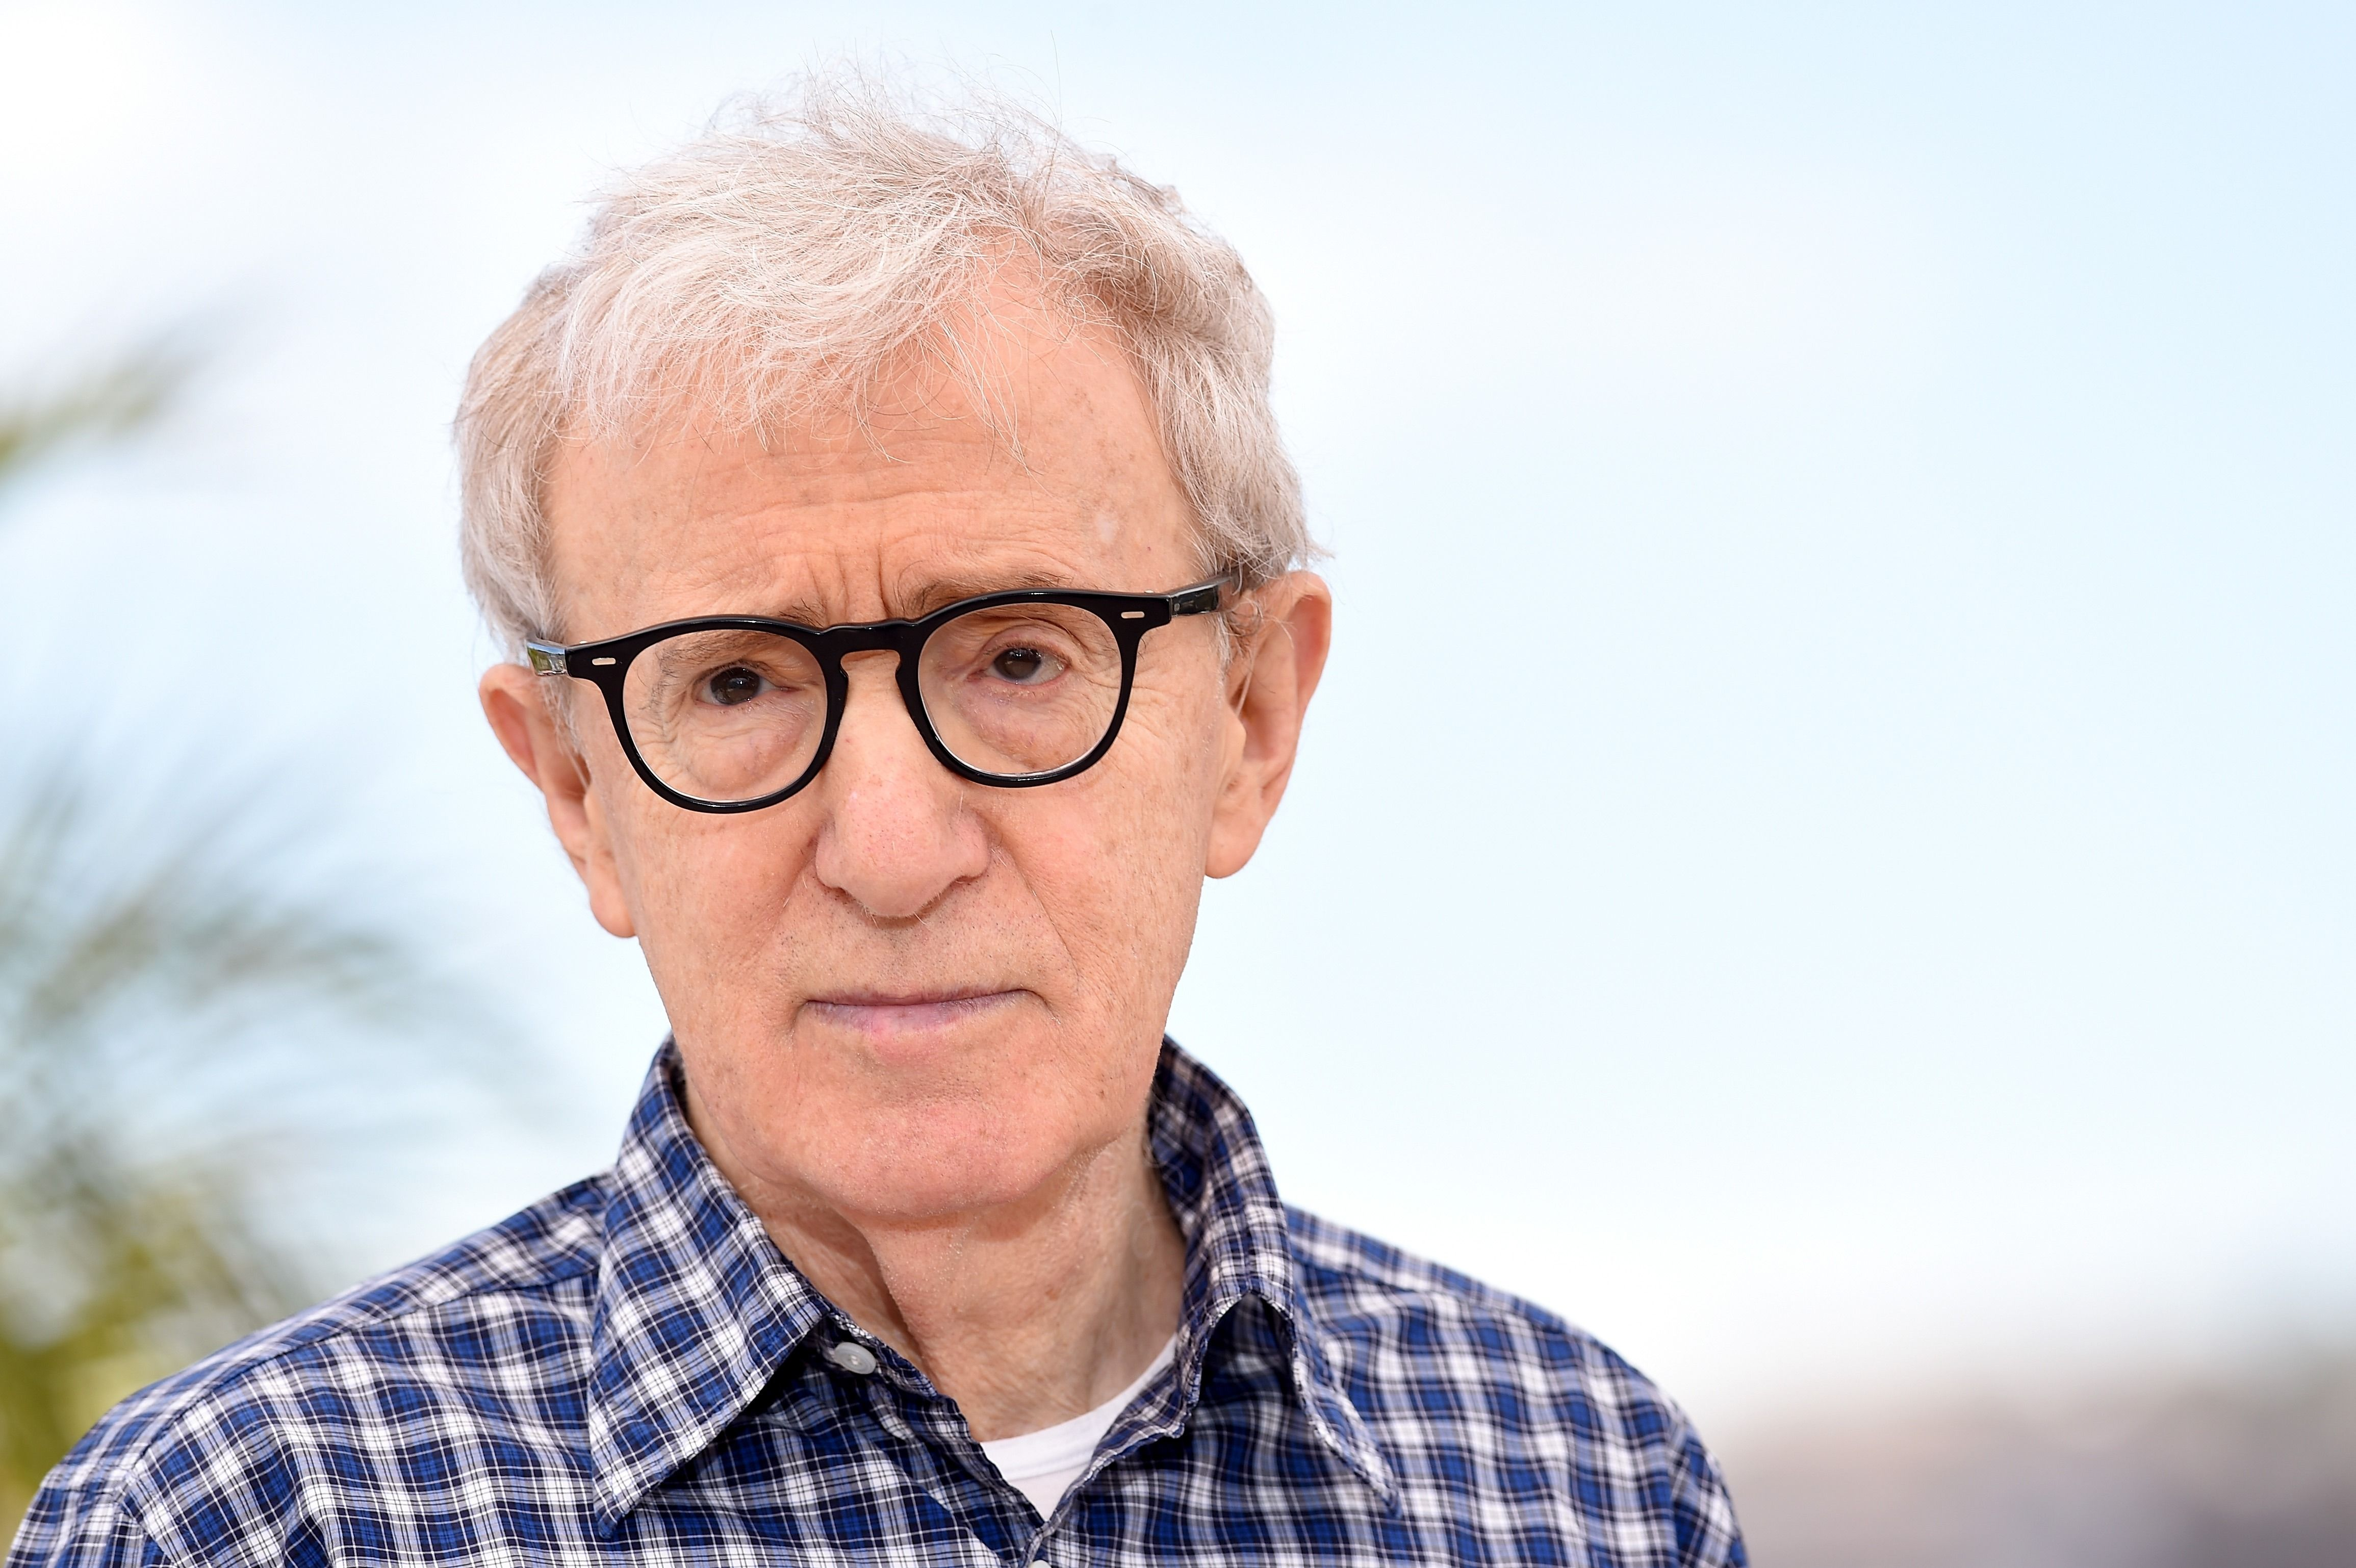 amazon shelving woody allen movie they bought for 25m the forward